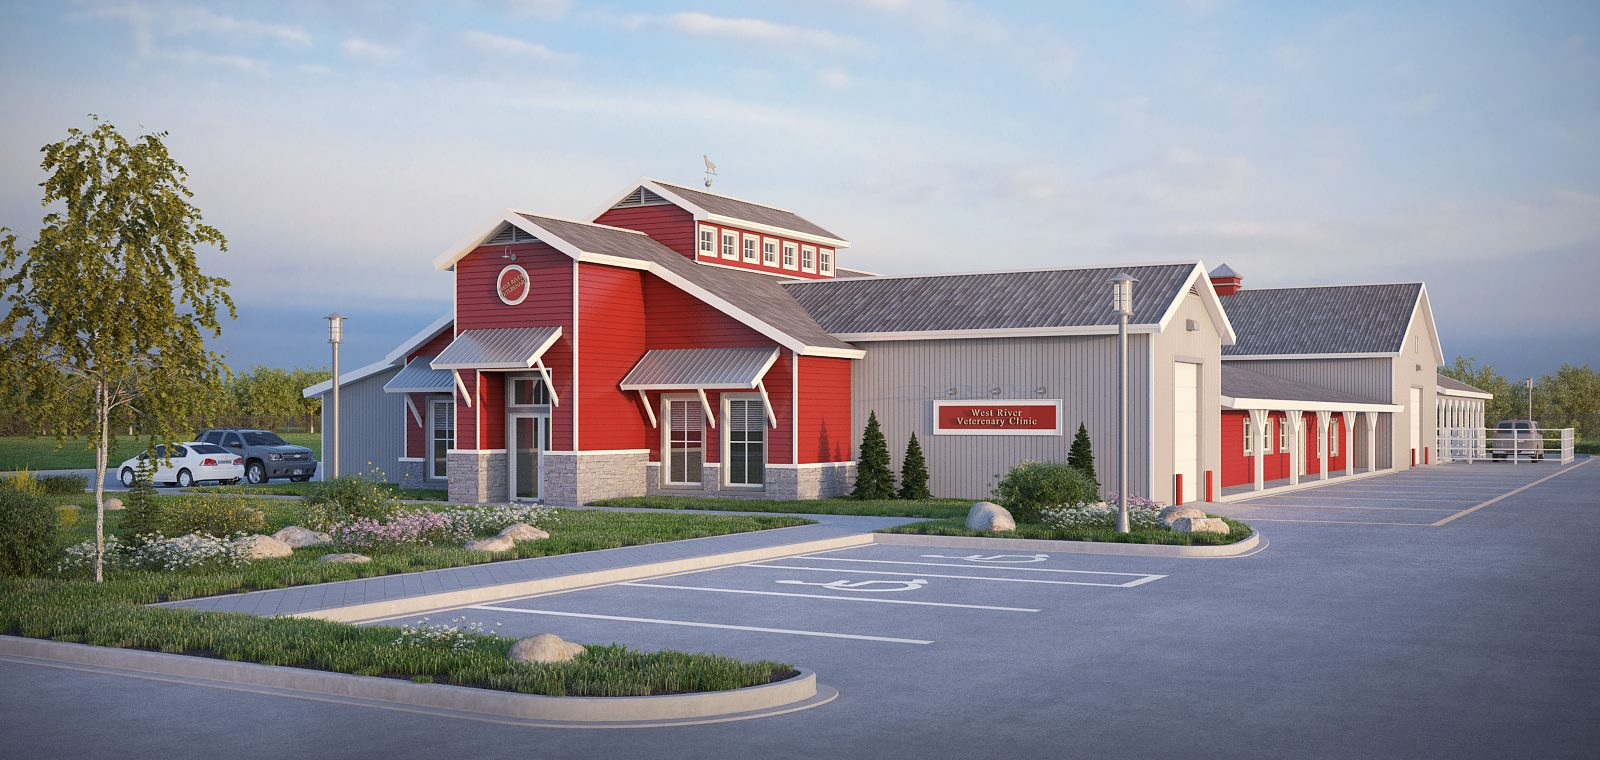 West River Vet Clinic is located in Hettinger, ND